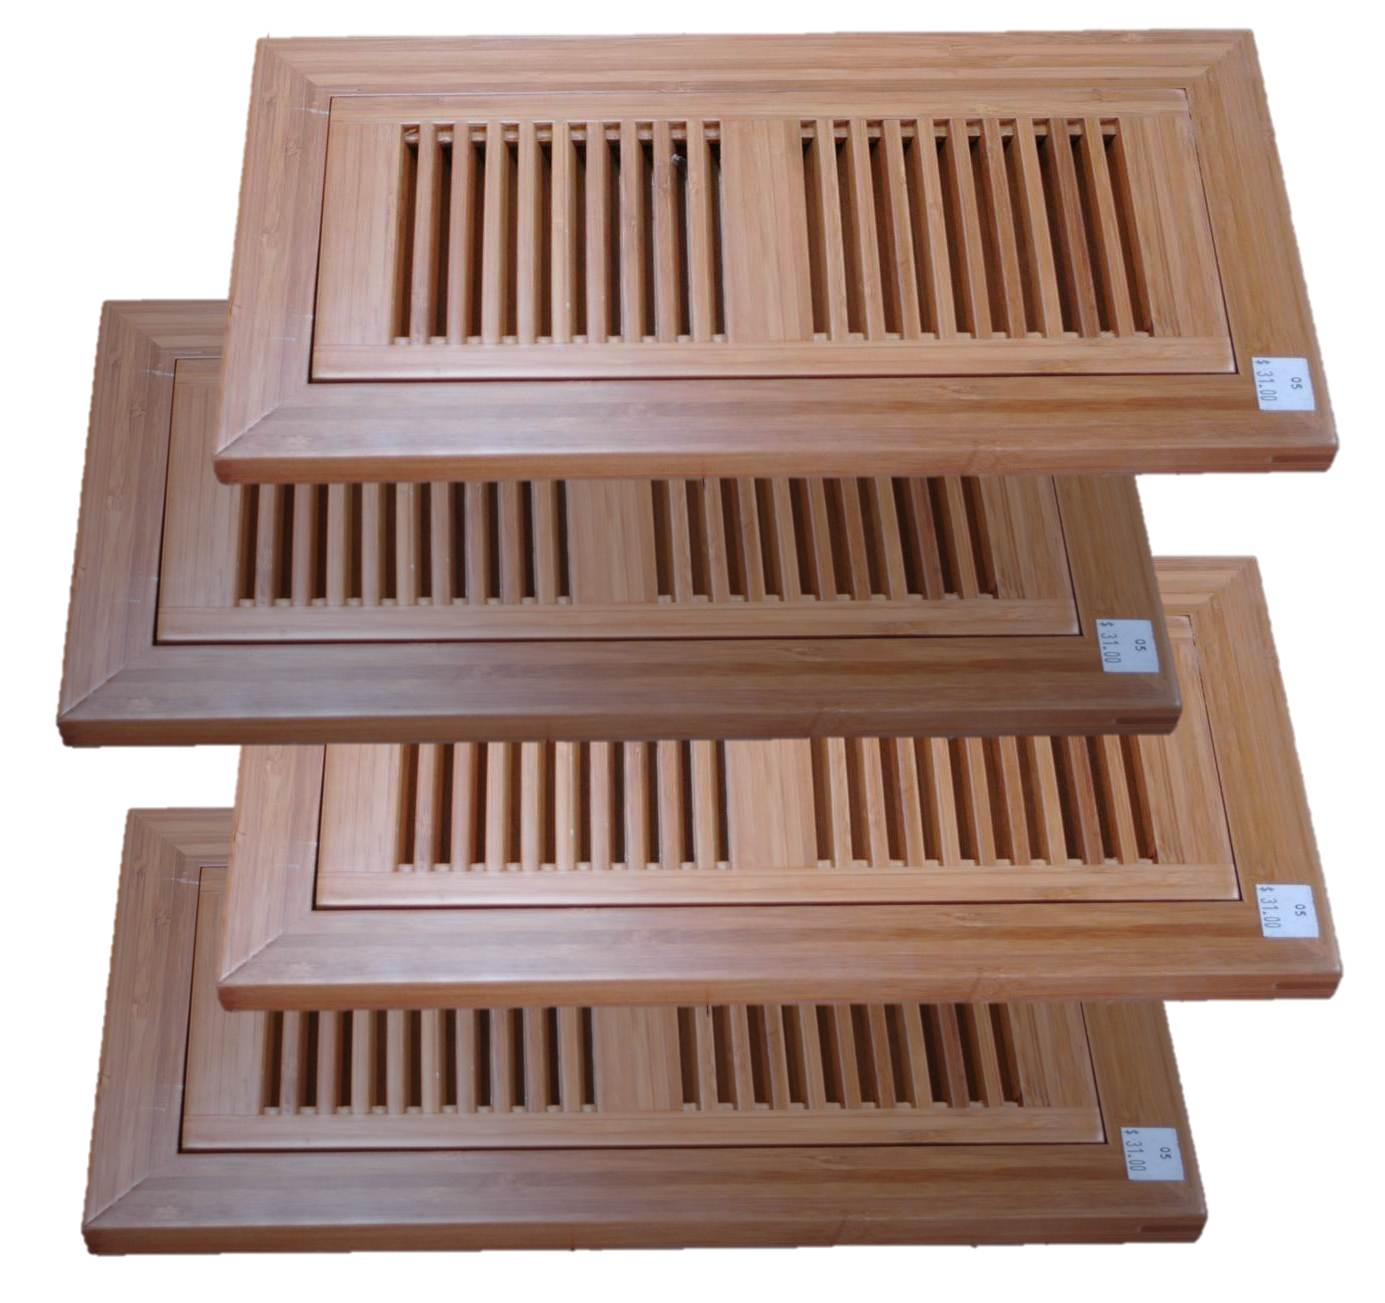 #402014 Hardwood Flooring Accessories Hardwood Floors Edensaw  Recommended 7427 Wood Air Vent Covers pics with 1385x1303 px on helpvideos.info - Air Conditioners, Air Coolers and more